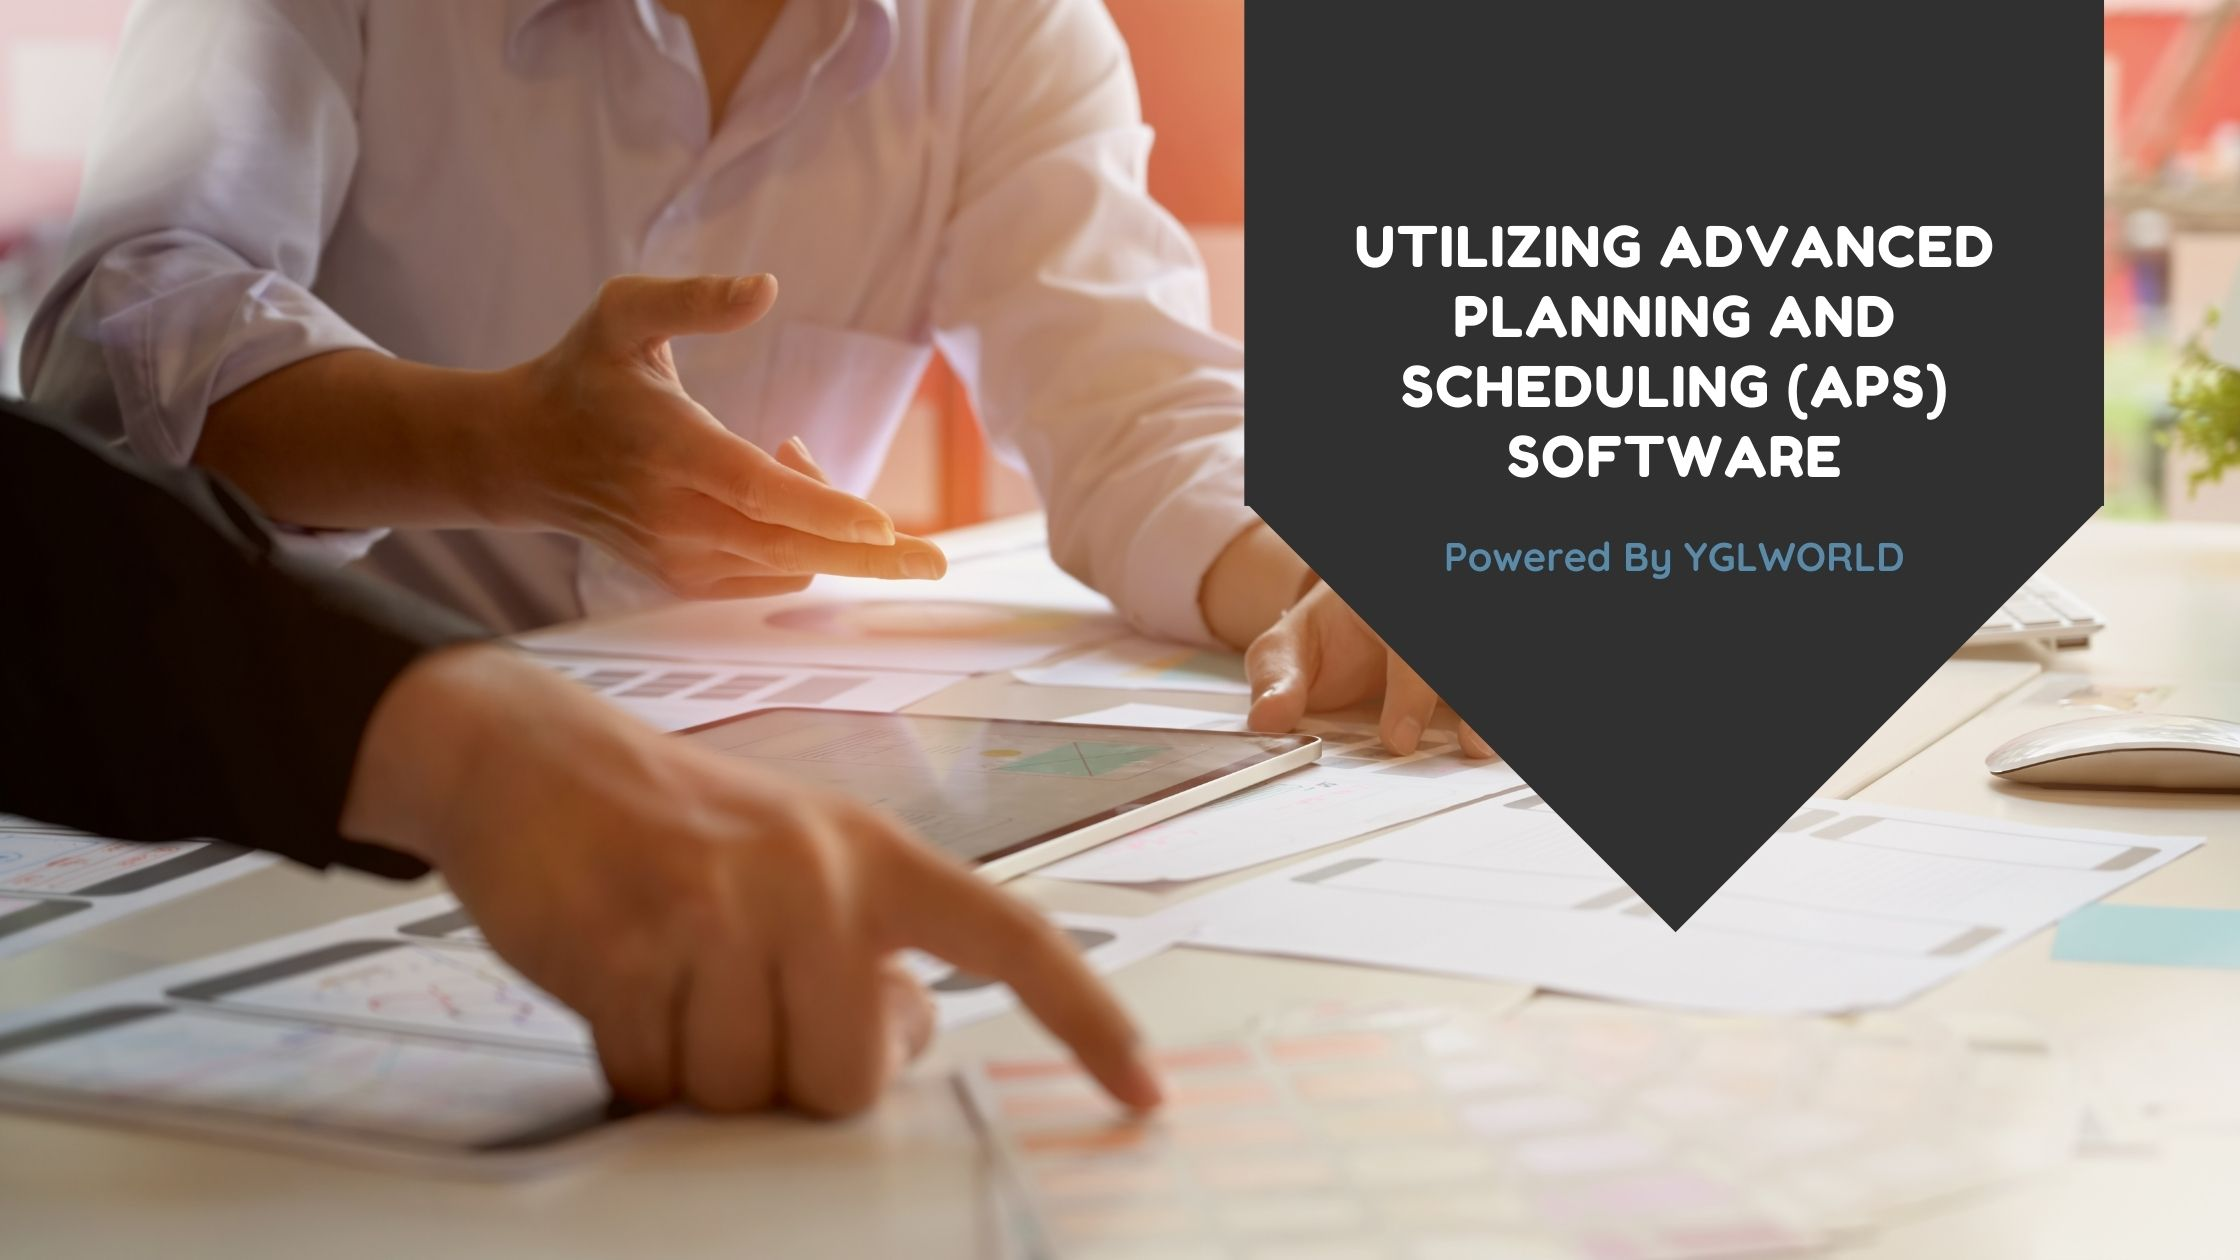 Utilizing ERP Advanced Planning and Scheduling (APS) Software